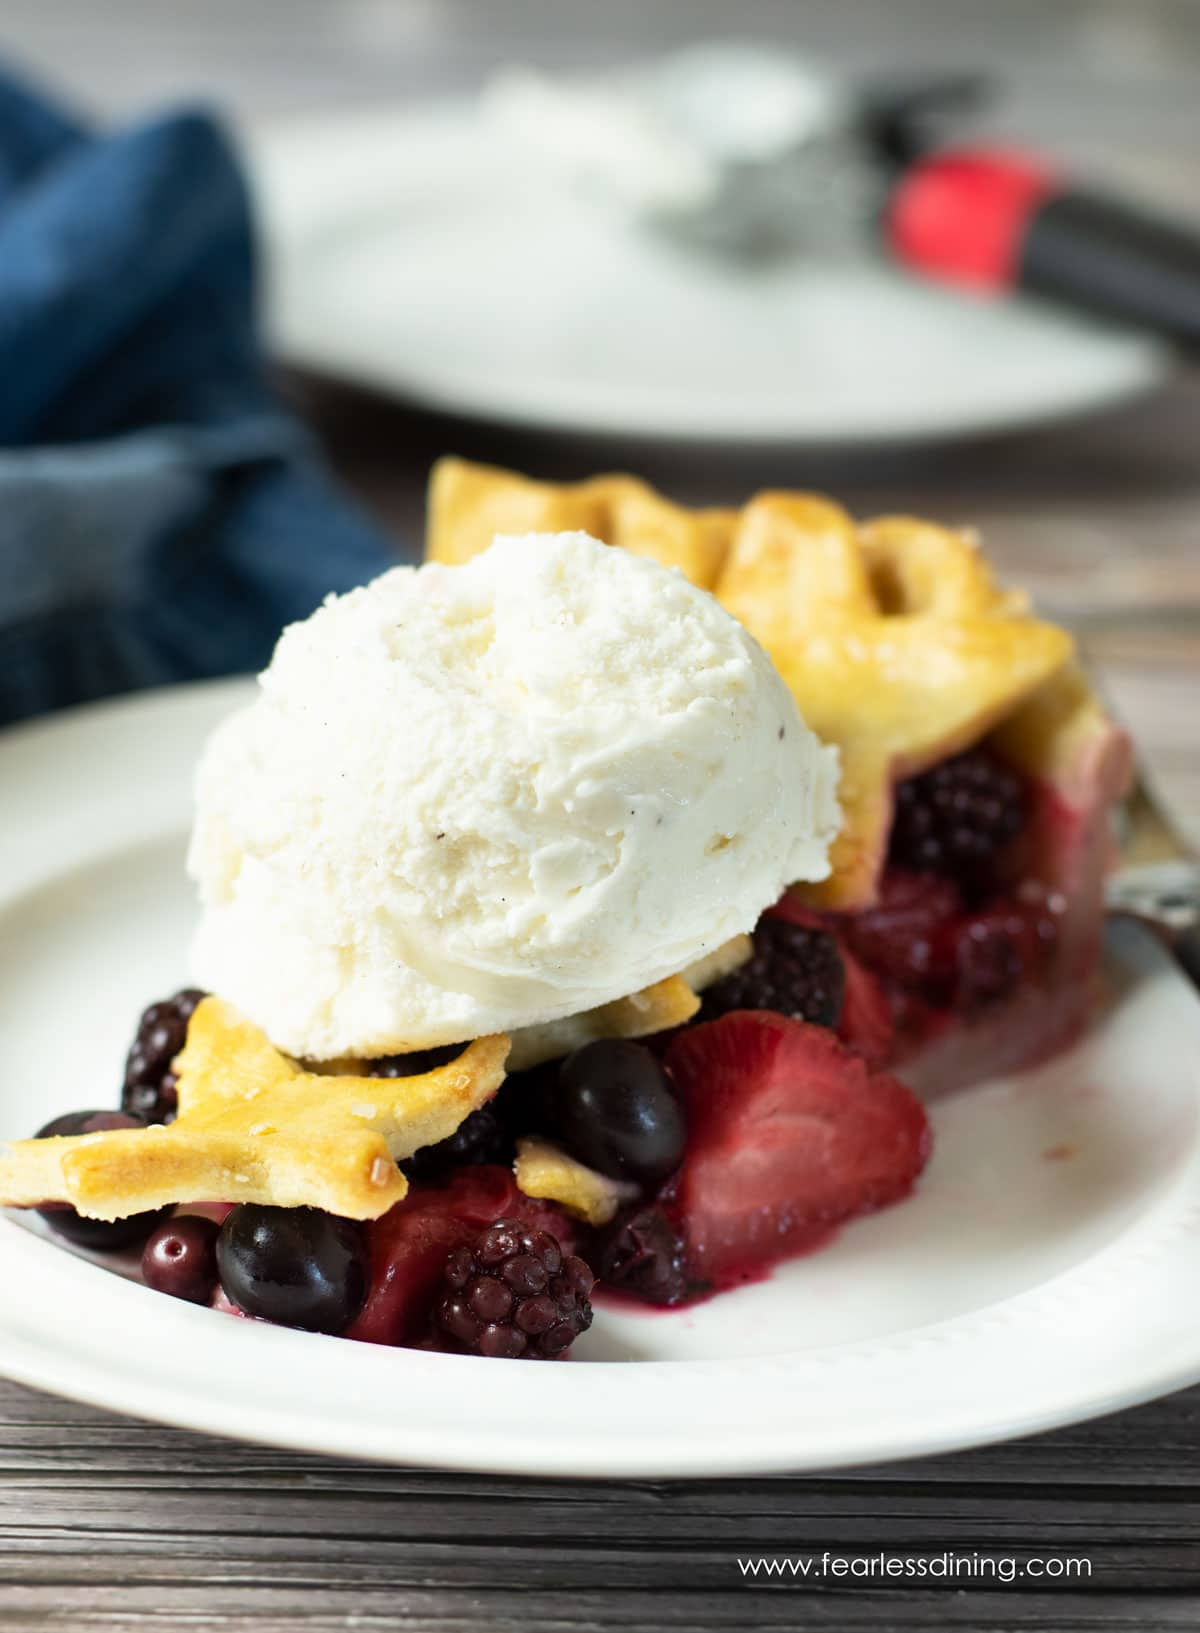 a slice of mixed berry pie with a scoop of ice cream on top